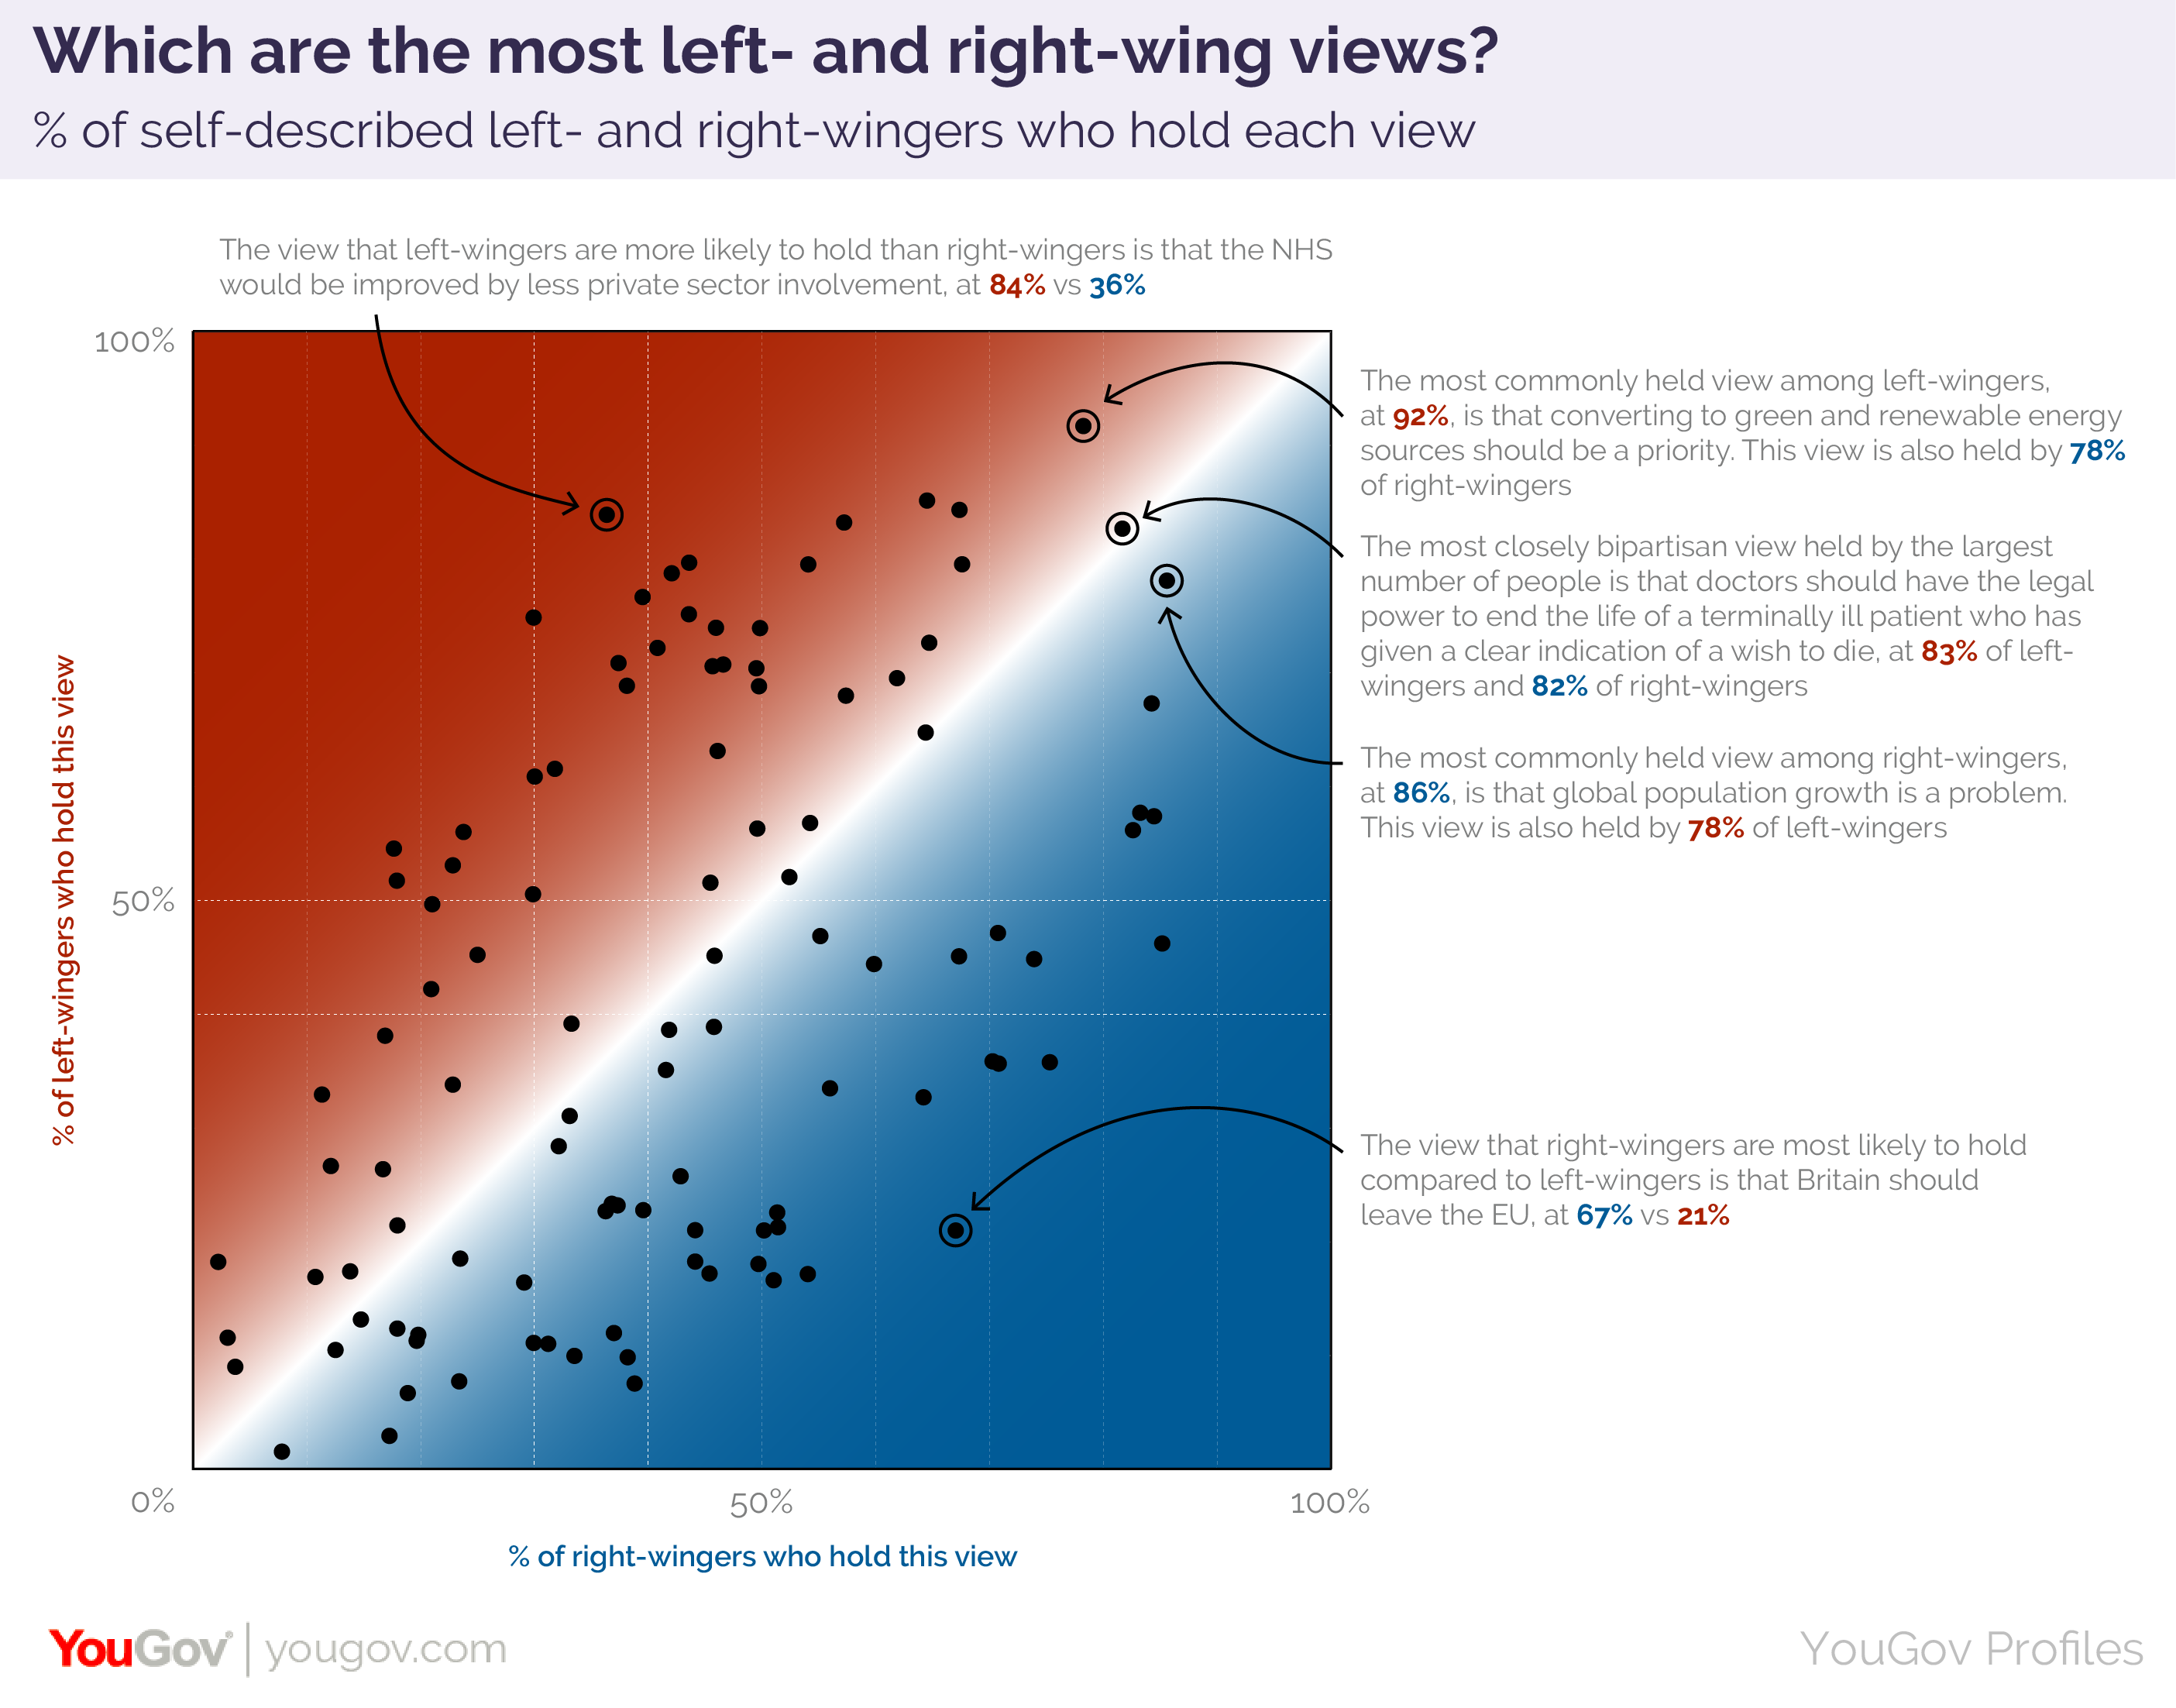 Left%20and%20right%20wing%20views-01.png